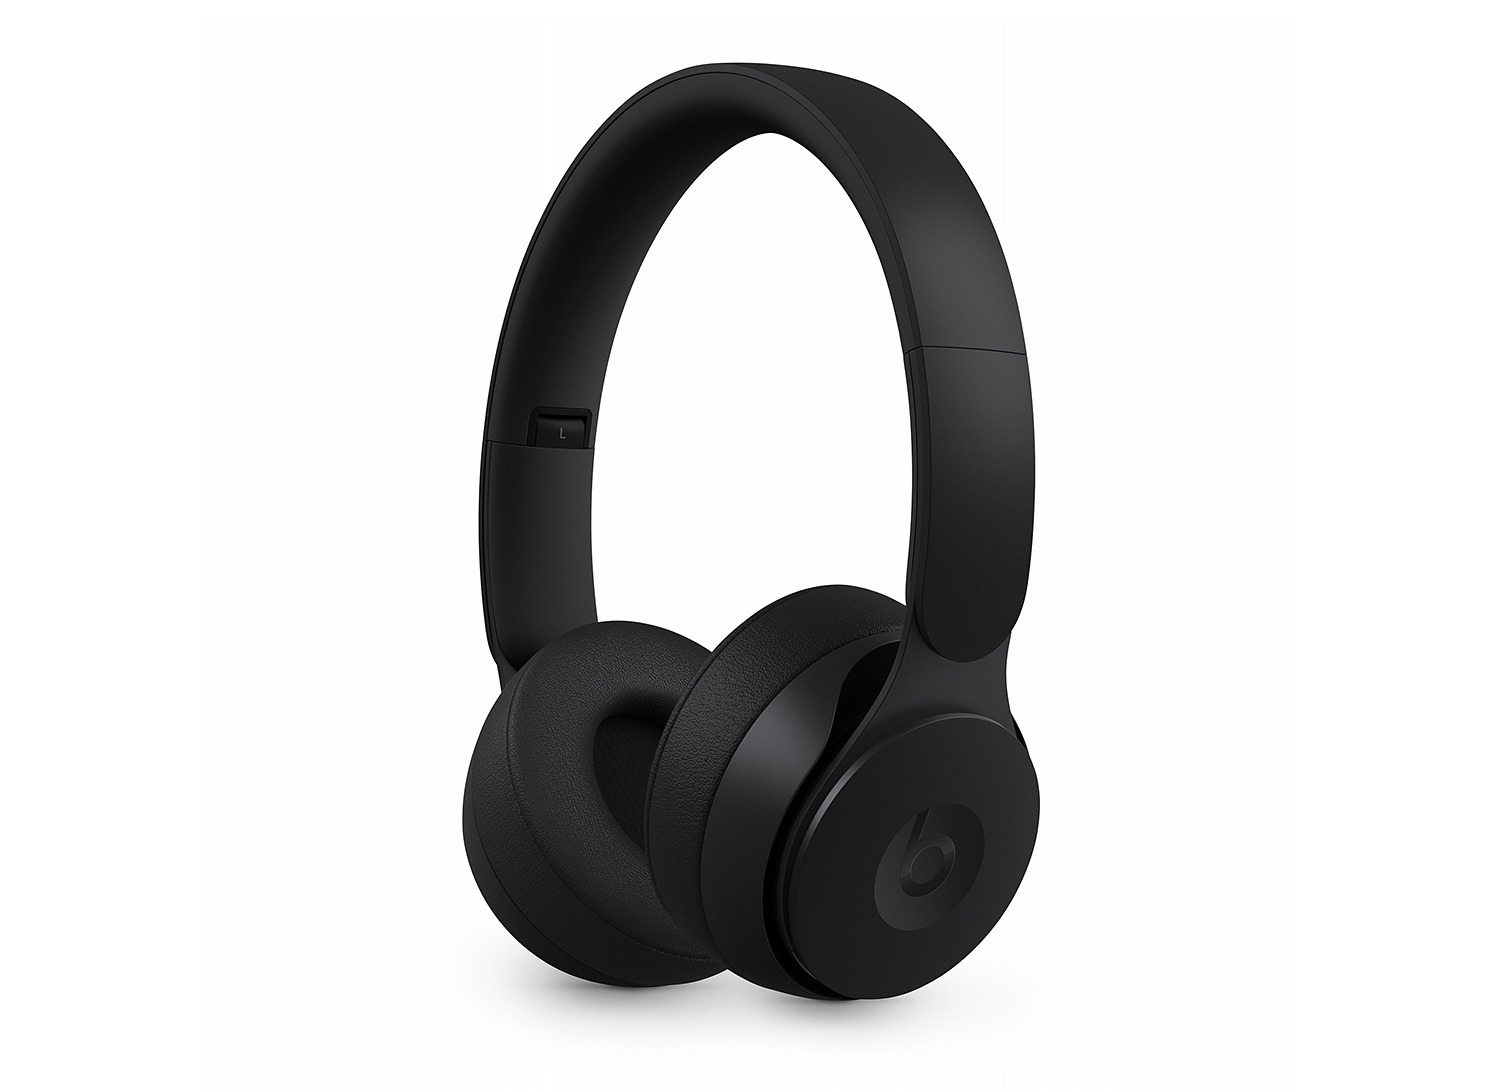 Beats Solo Pro Headphones Feature Active Noise Cancelling at werd.com